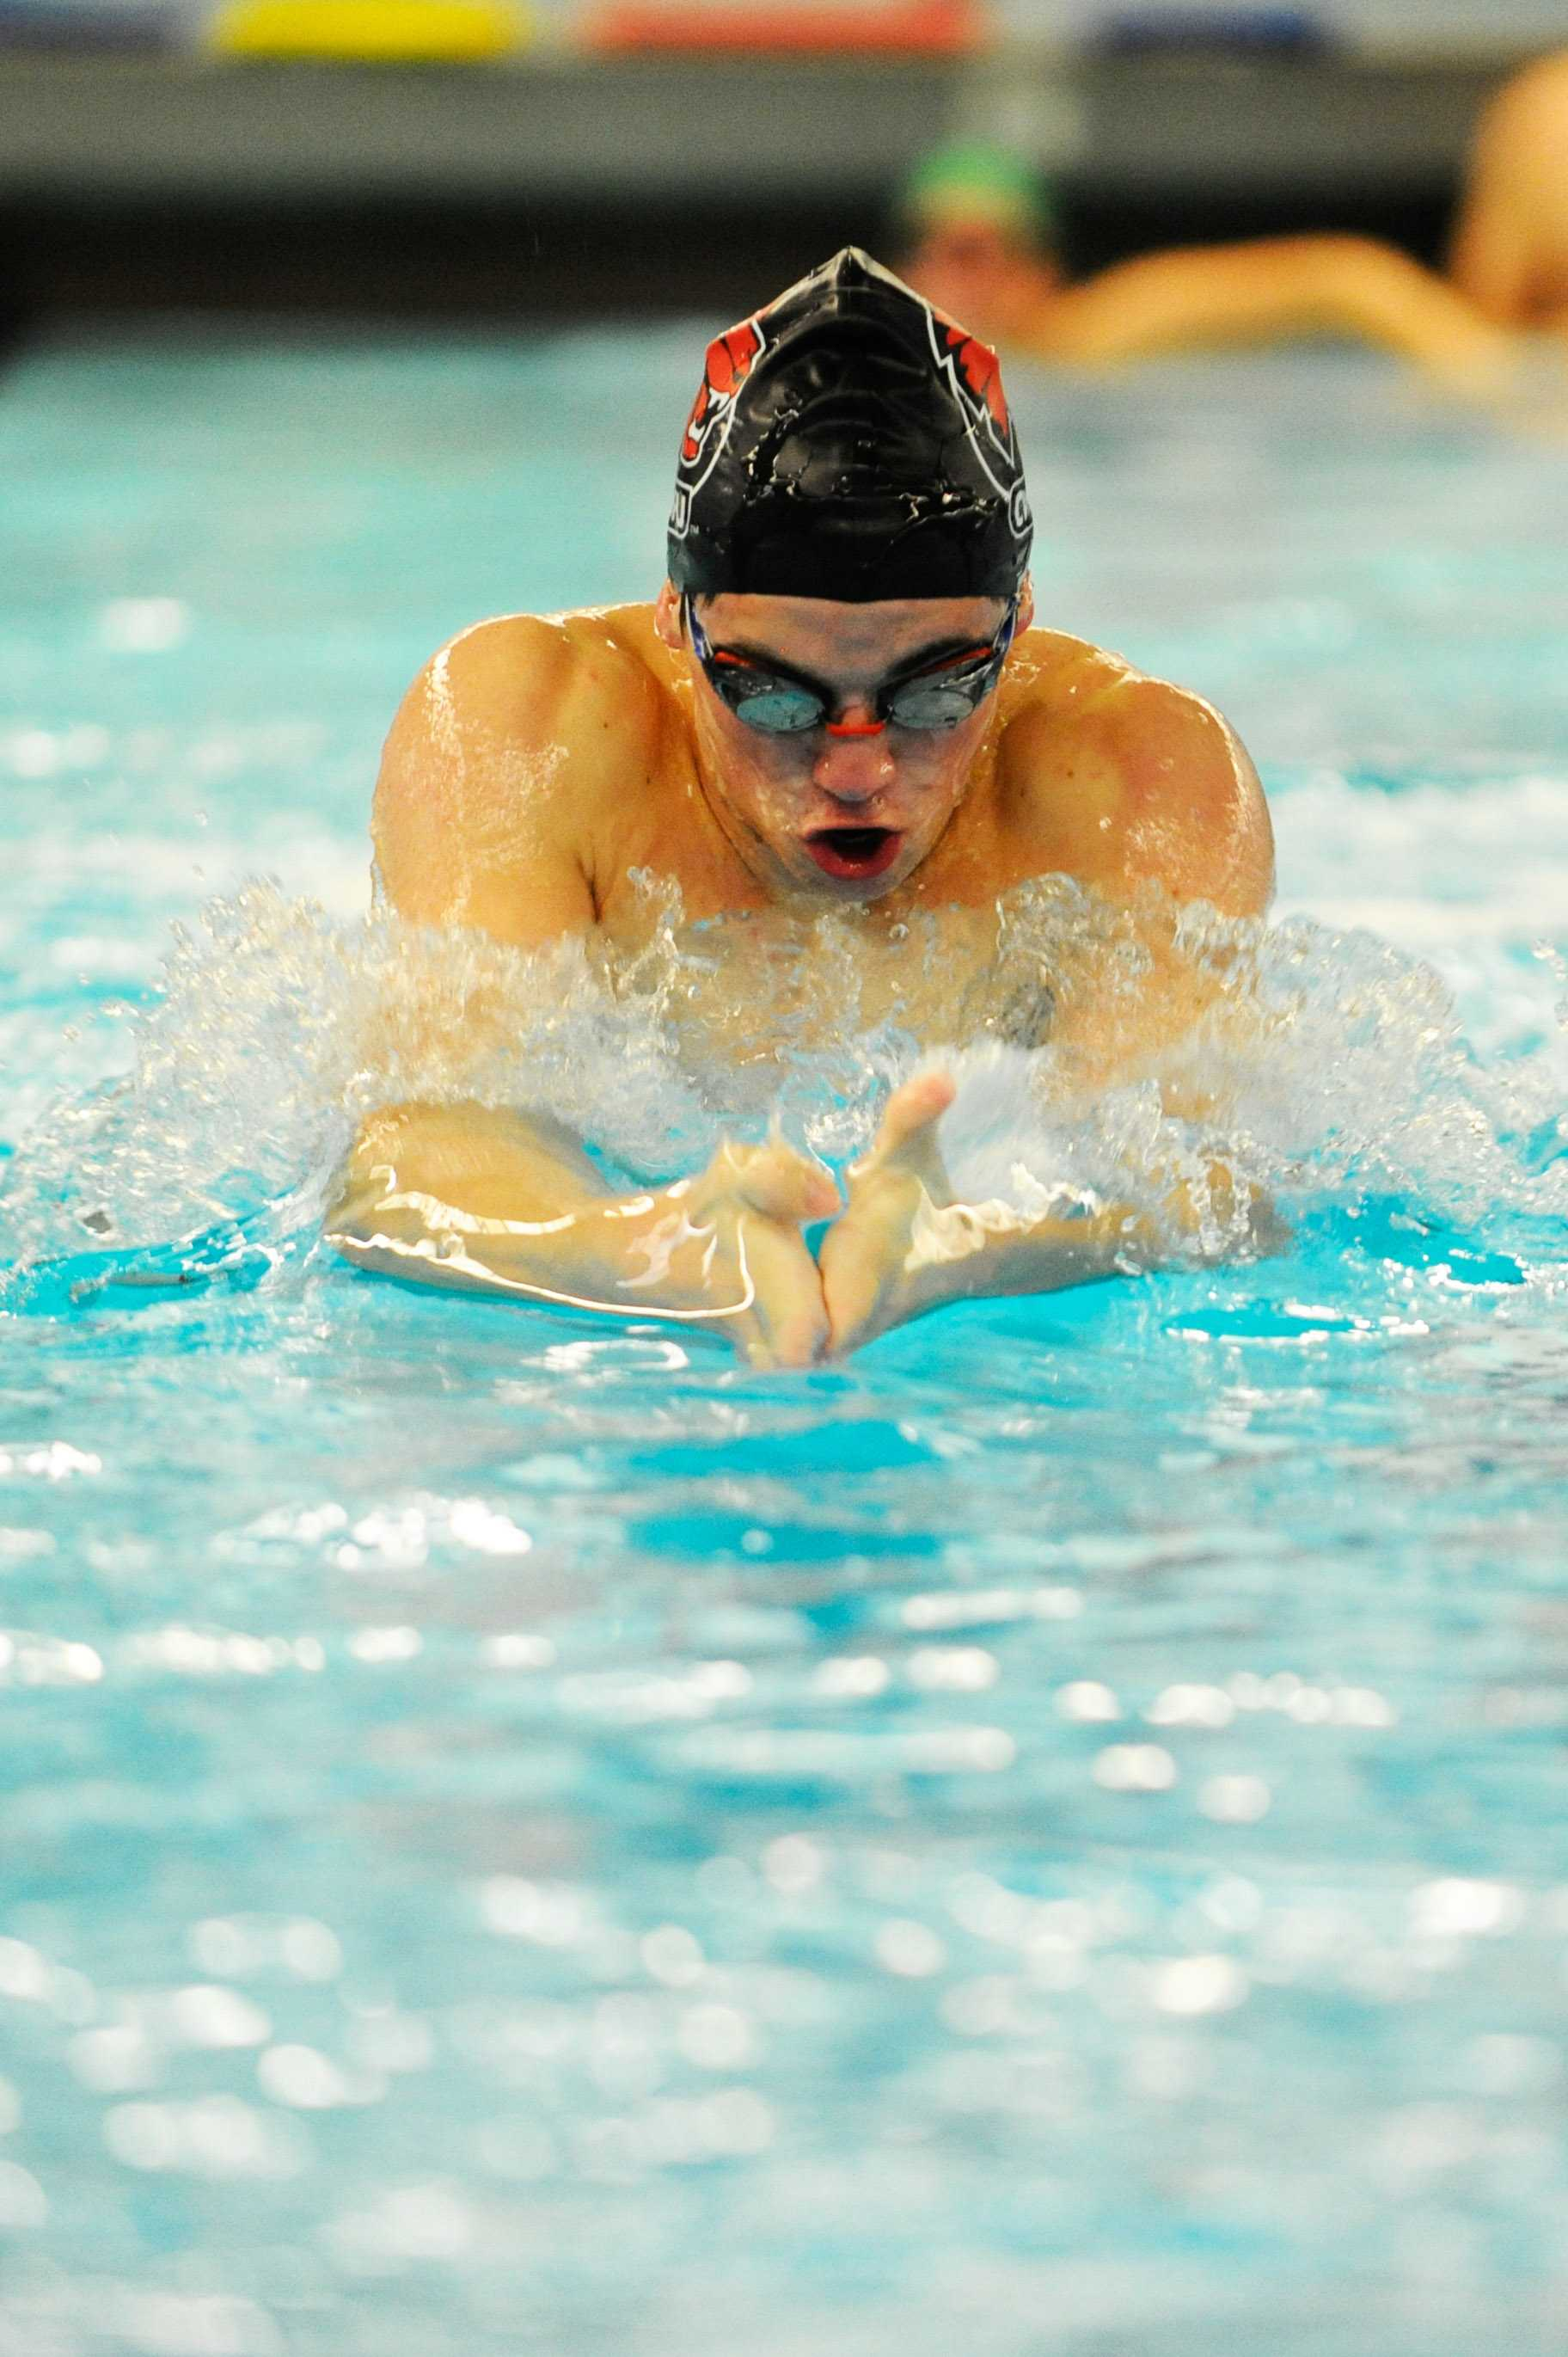 he CWU swim club will be traveling up to Juanita High School in Kirkland, Washington for their first meet of the season.